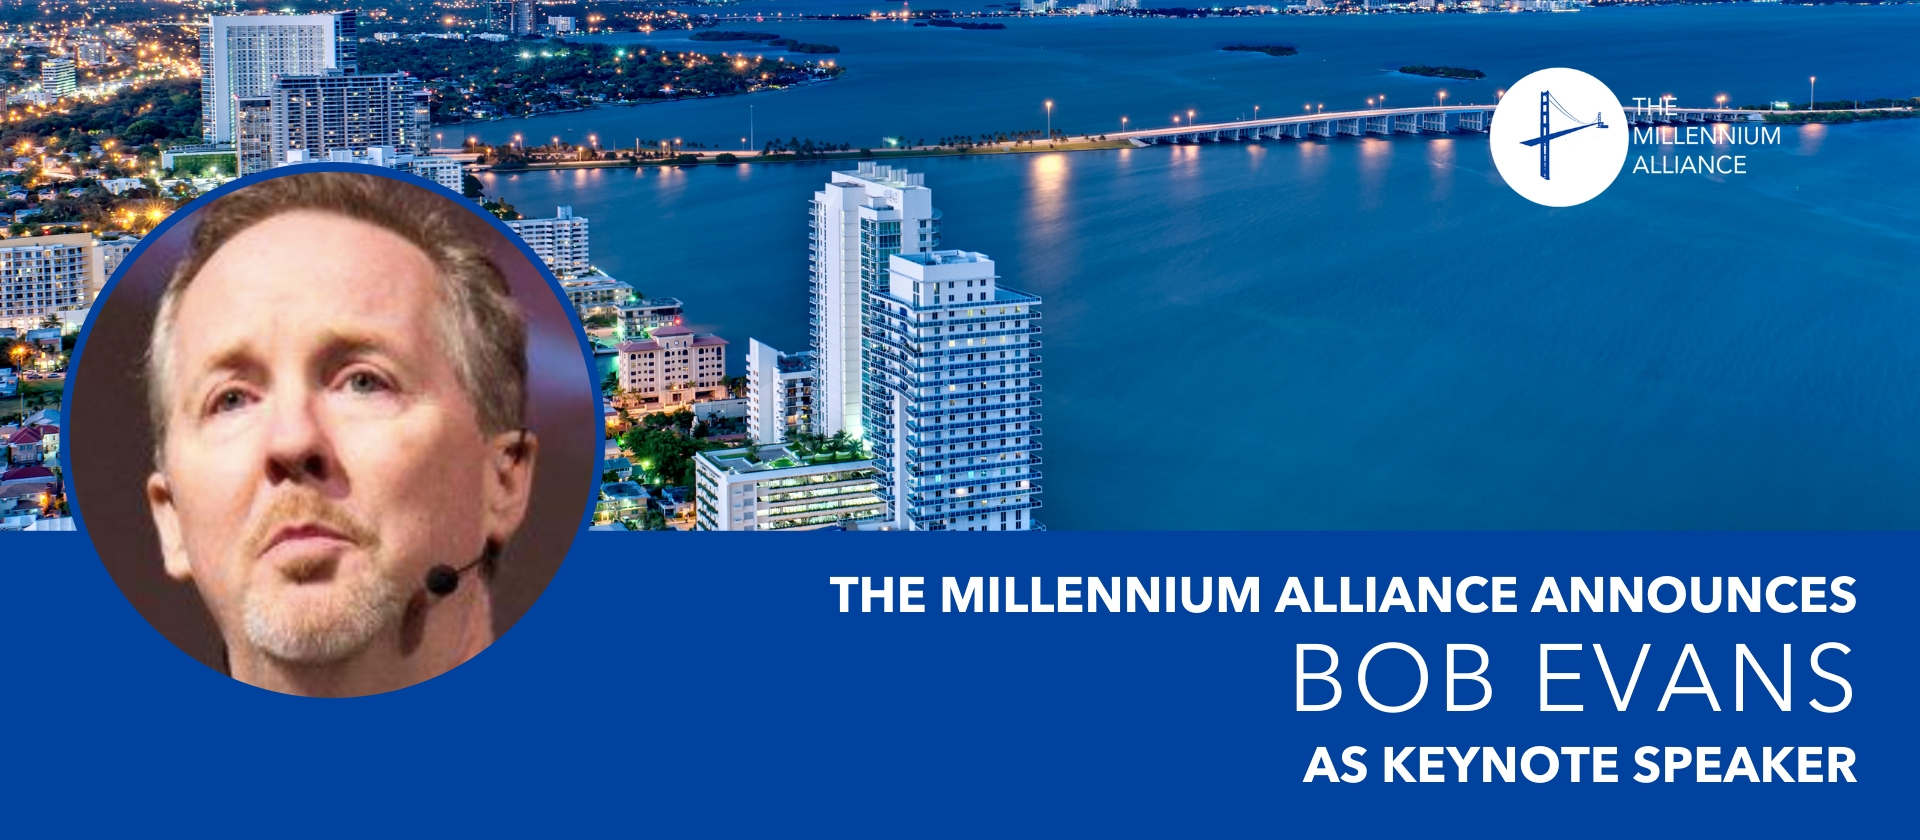 Bob Evans Millennium Alliance Keynote Speaker Announcement